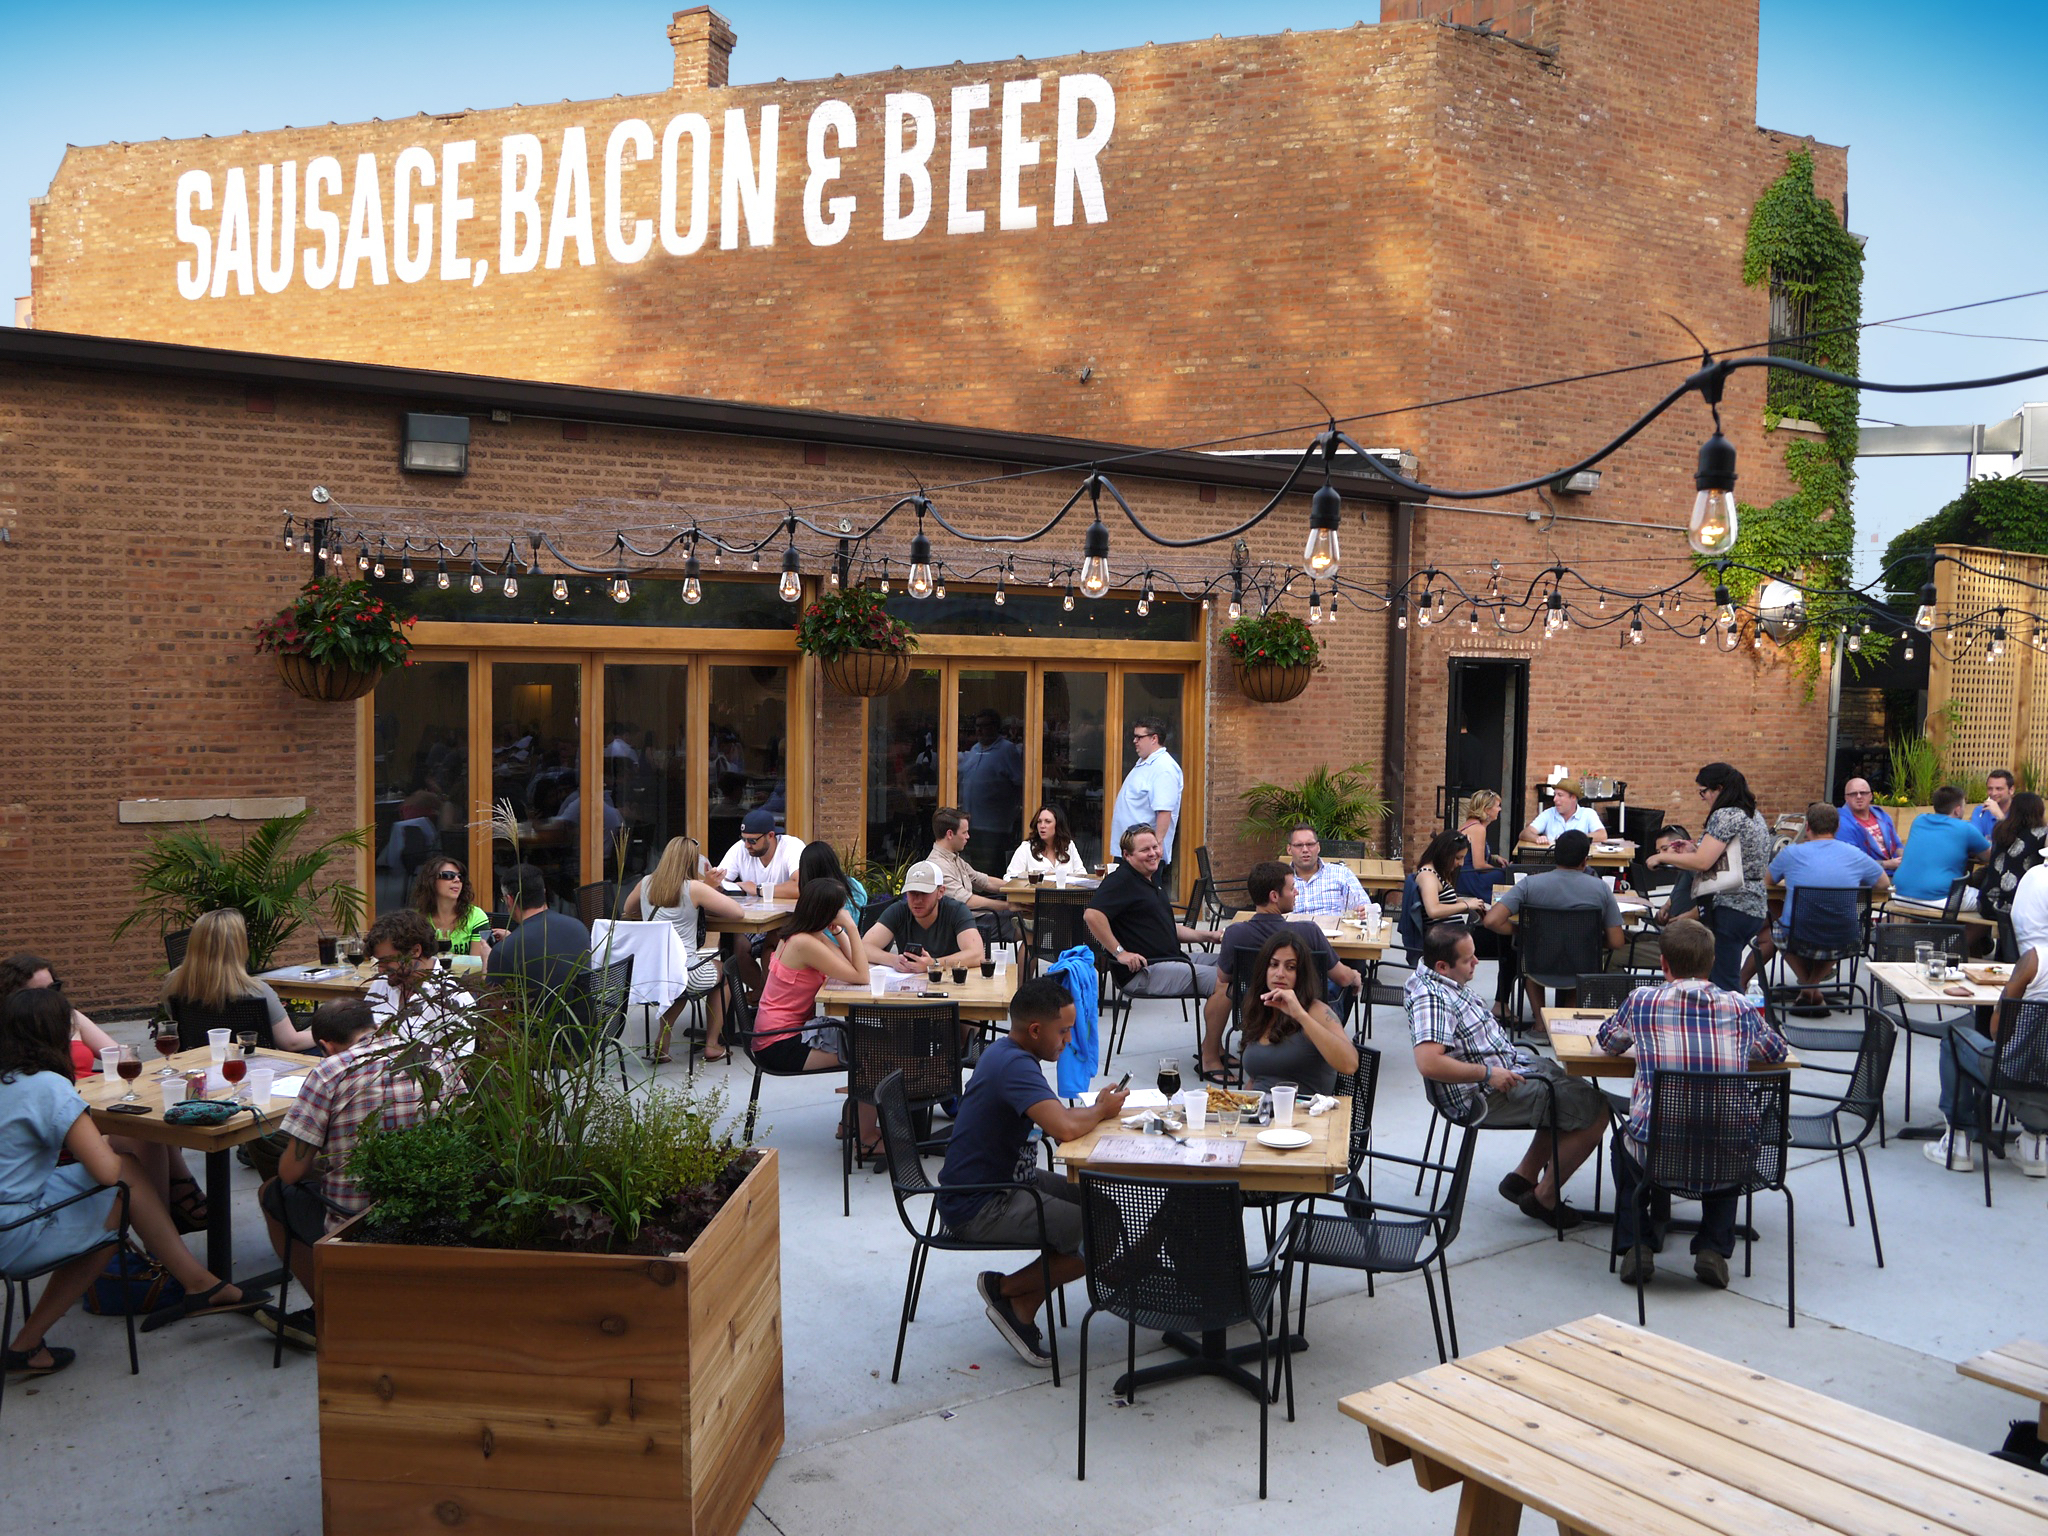 19 Best Outdoor Restaurants Patios And Cafes In Chicago